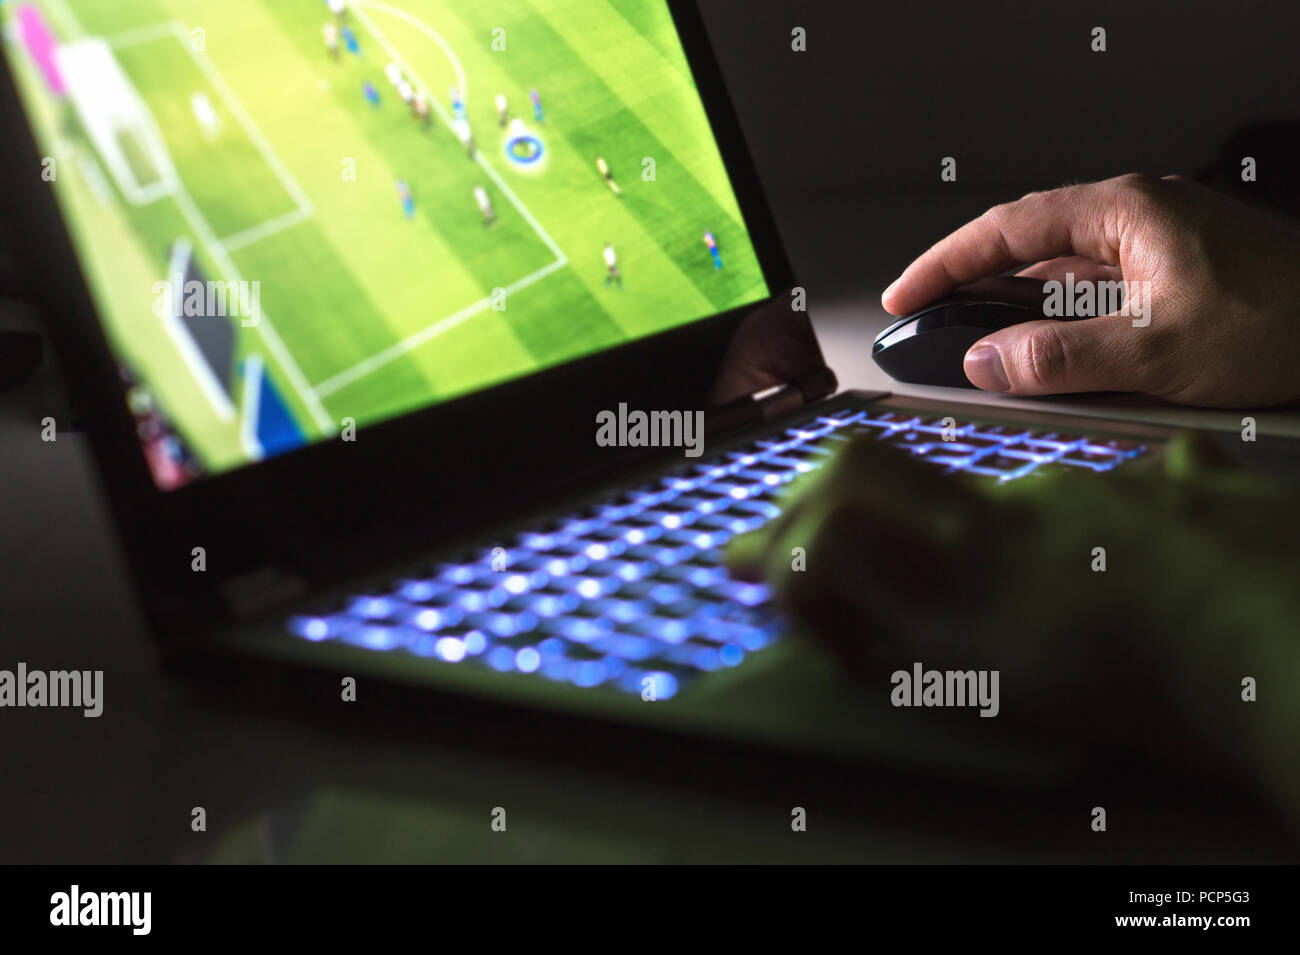 Young man playing soccer or football game online with laptop in dark or late at night. Competitive video gaming, electronic sports and esports concept - Stock Image